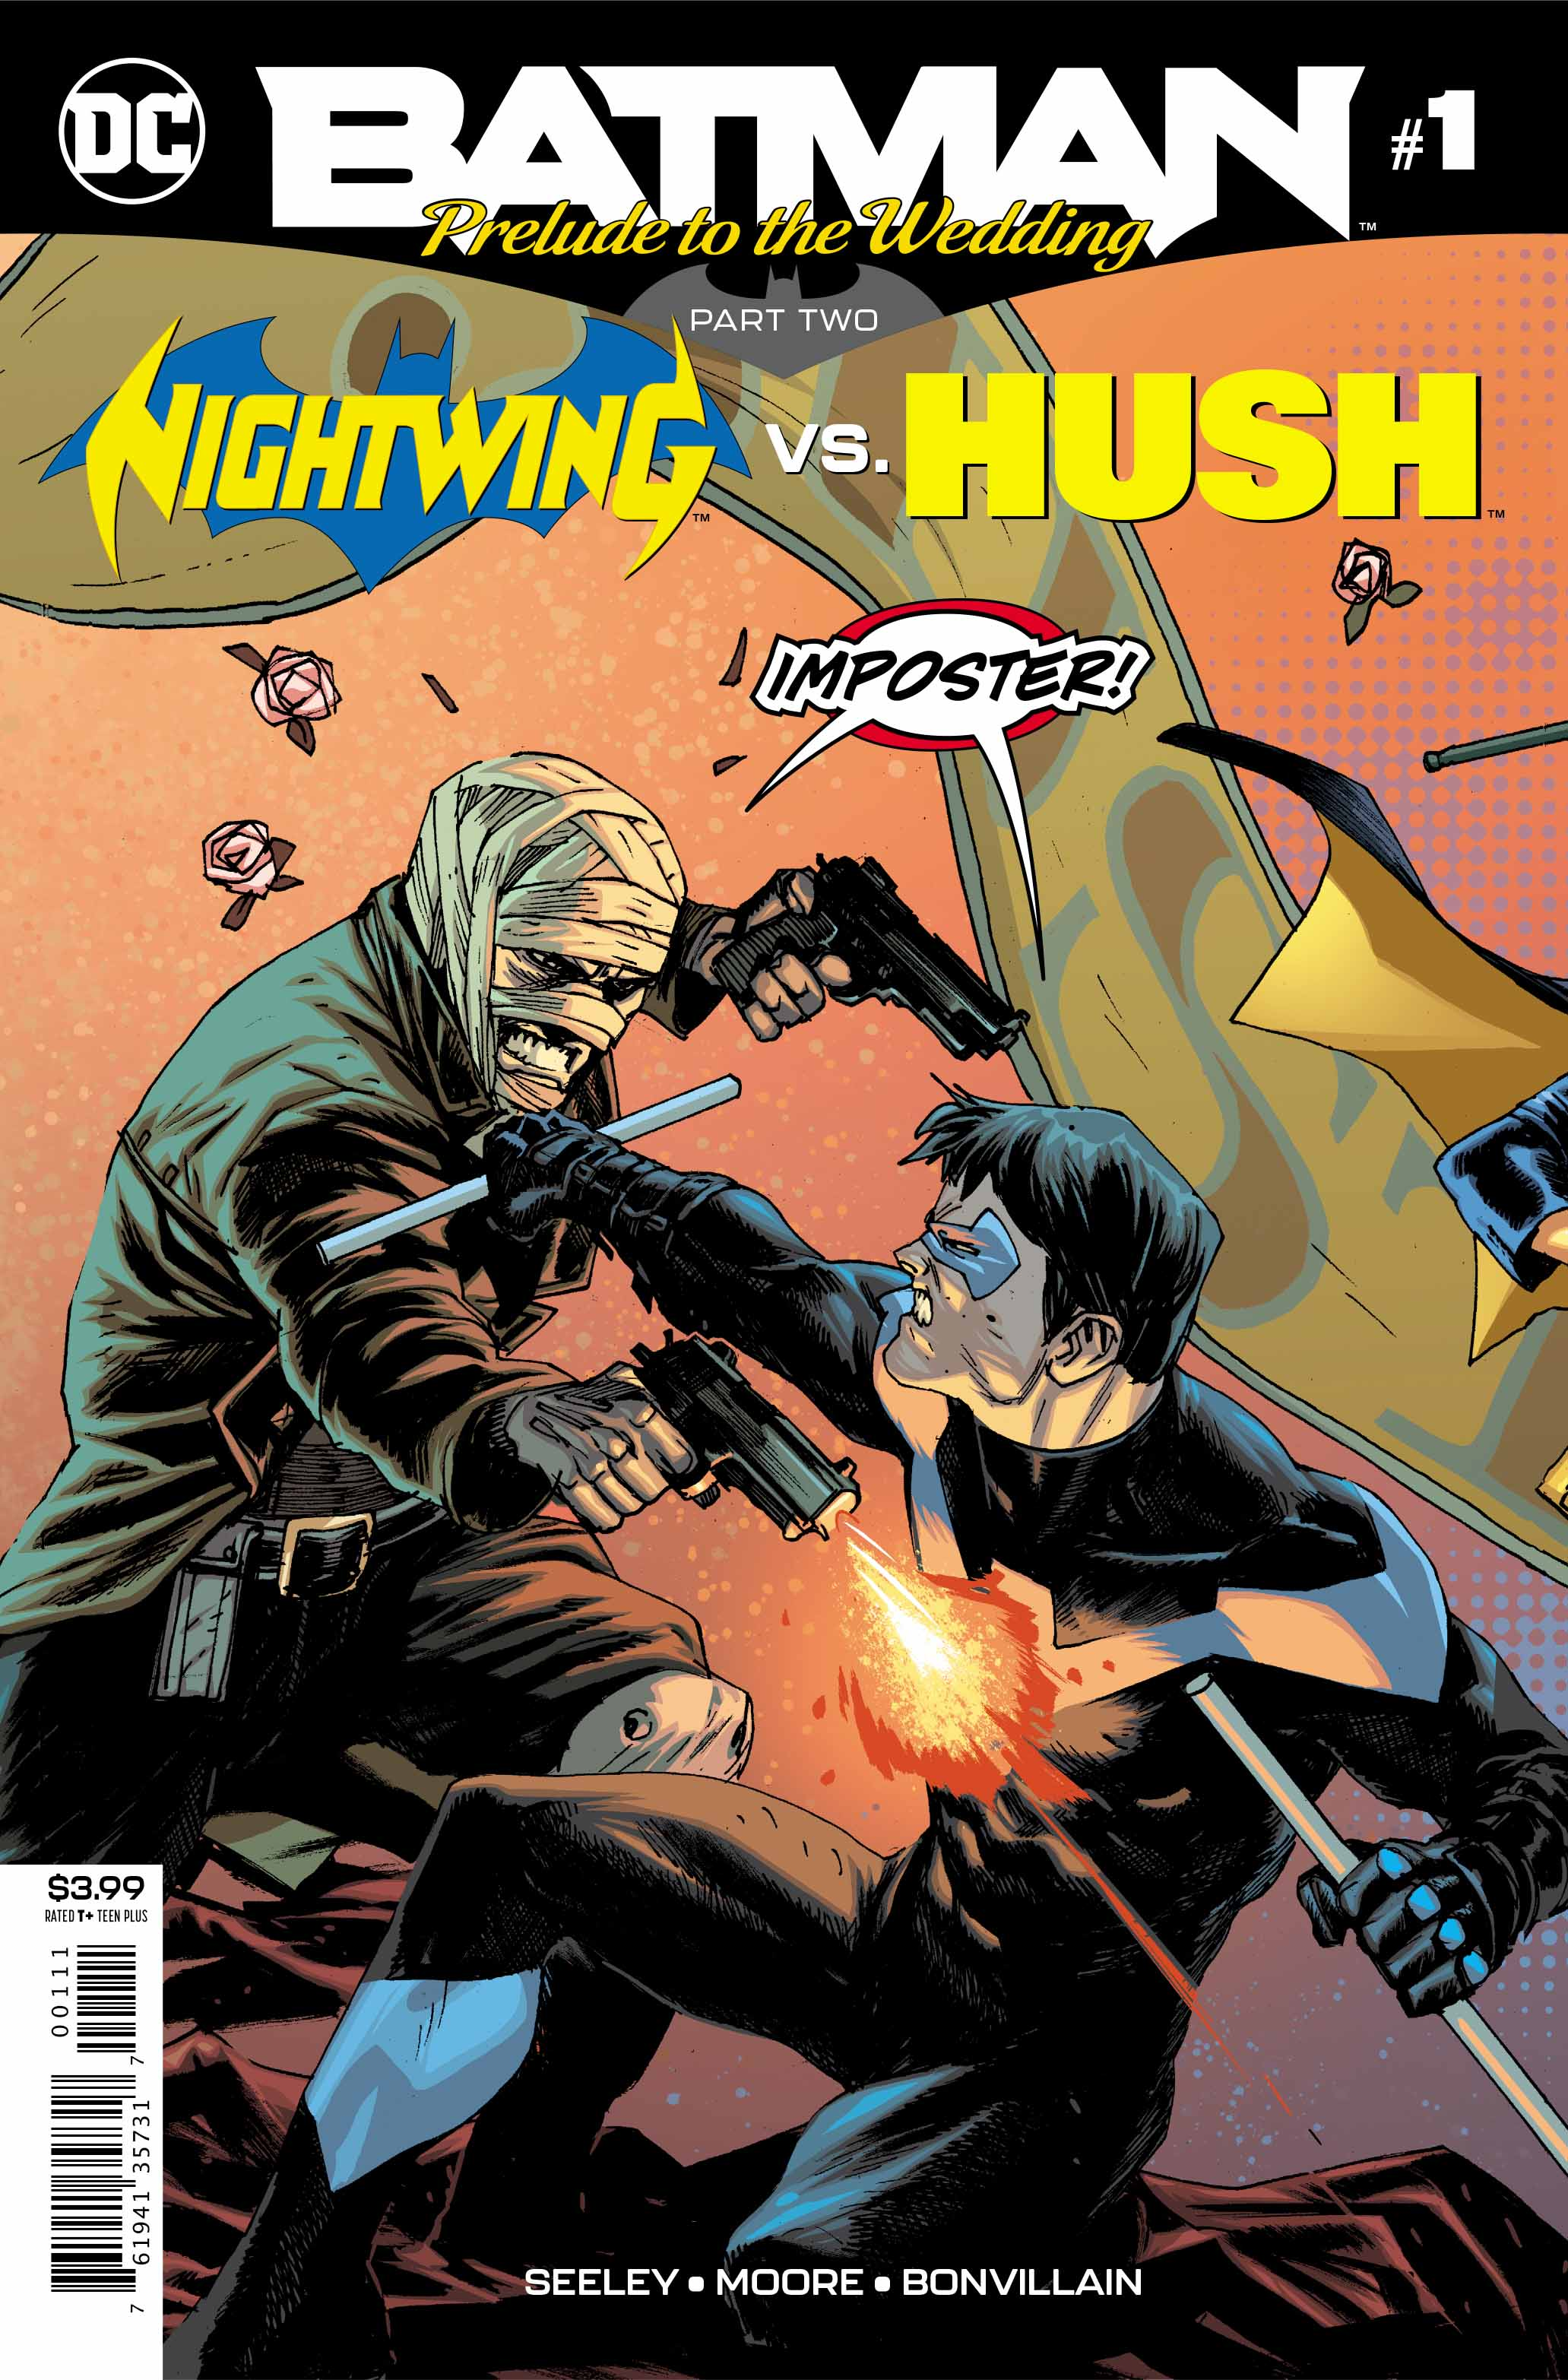 Batman: Prelude to the Wedding – Nightwing vs. Hush #1